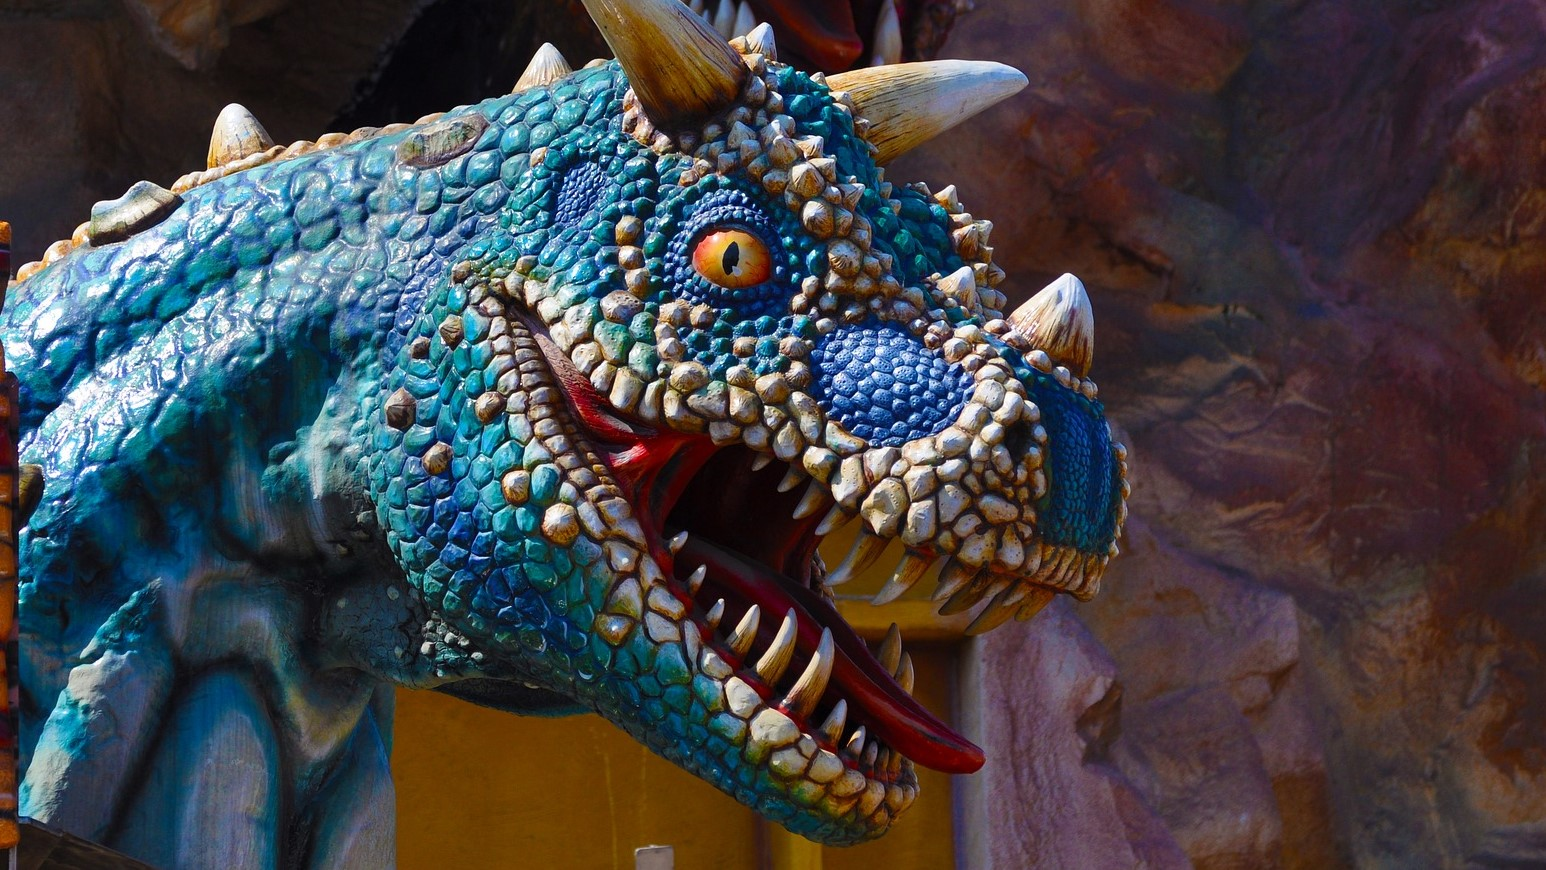 Jurassic World Camp Cretaceous Is About Fabulous Flamboyant Dinosaurs It is part of the jurassic park franchise and debuted on netflix on september 18. jurassic world camp cretaceous is